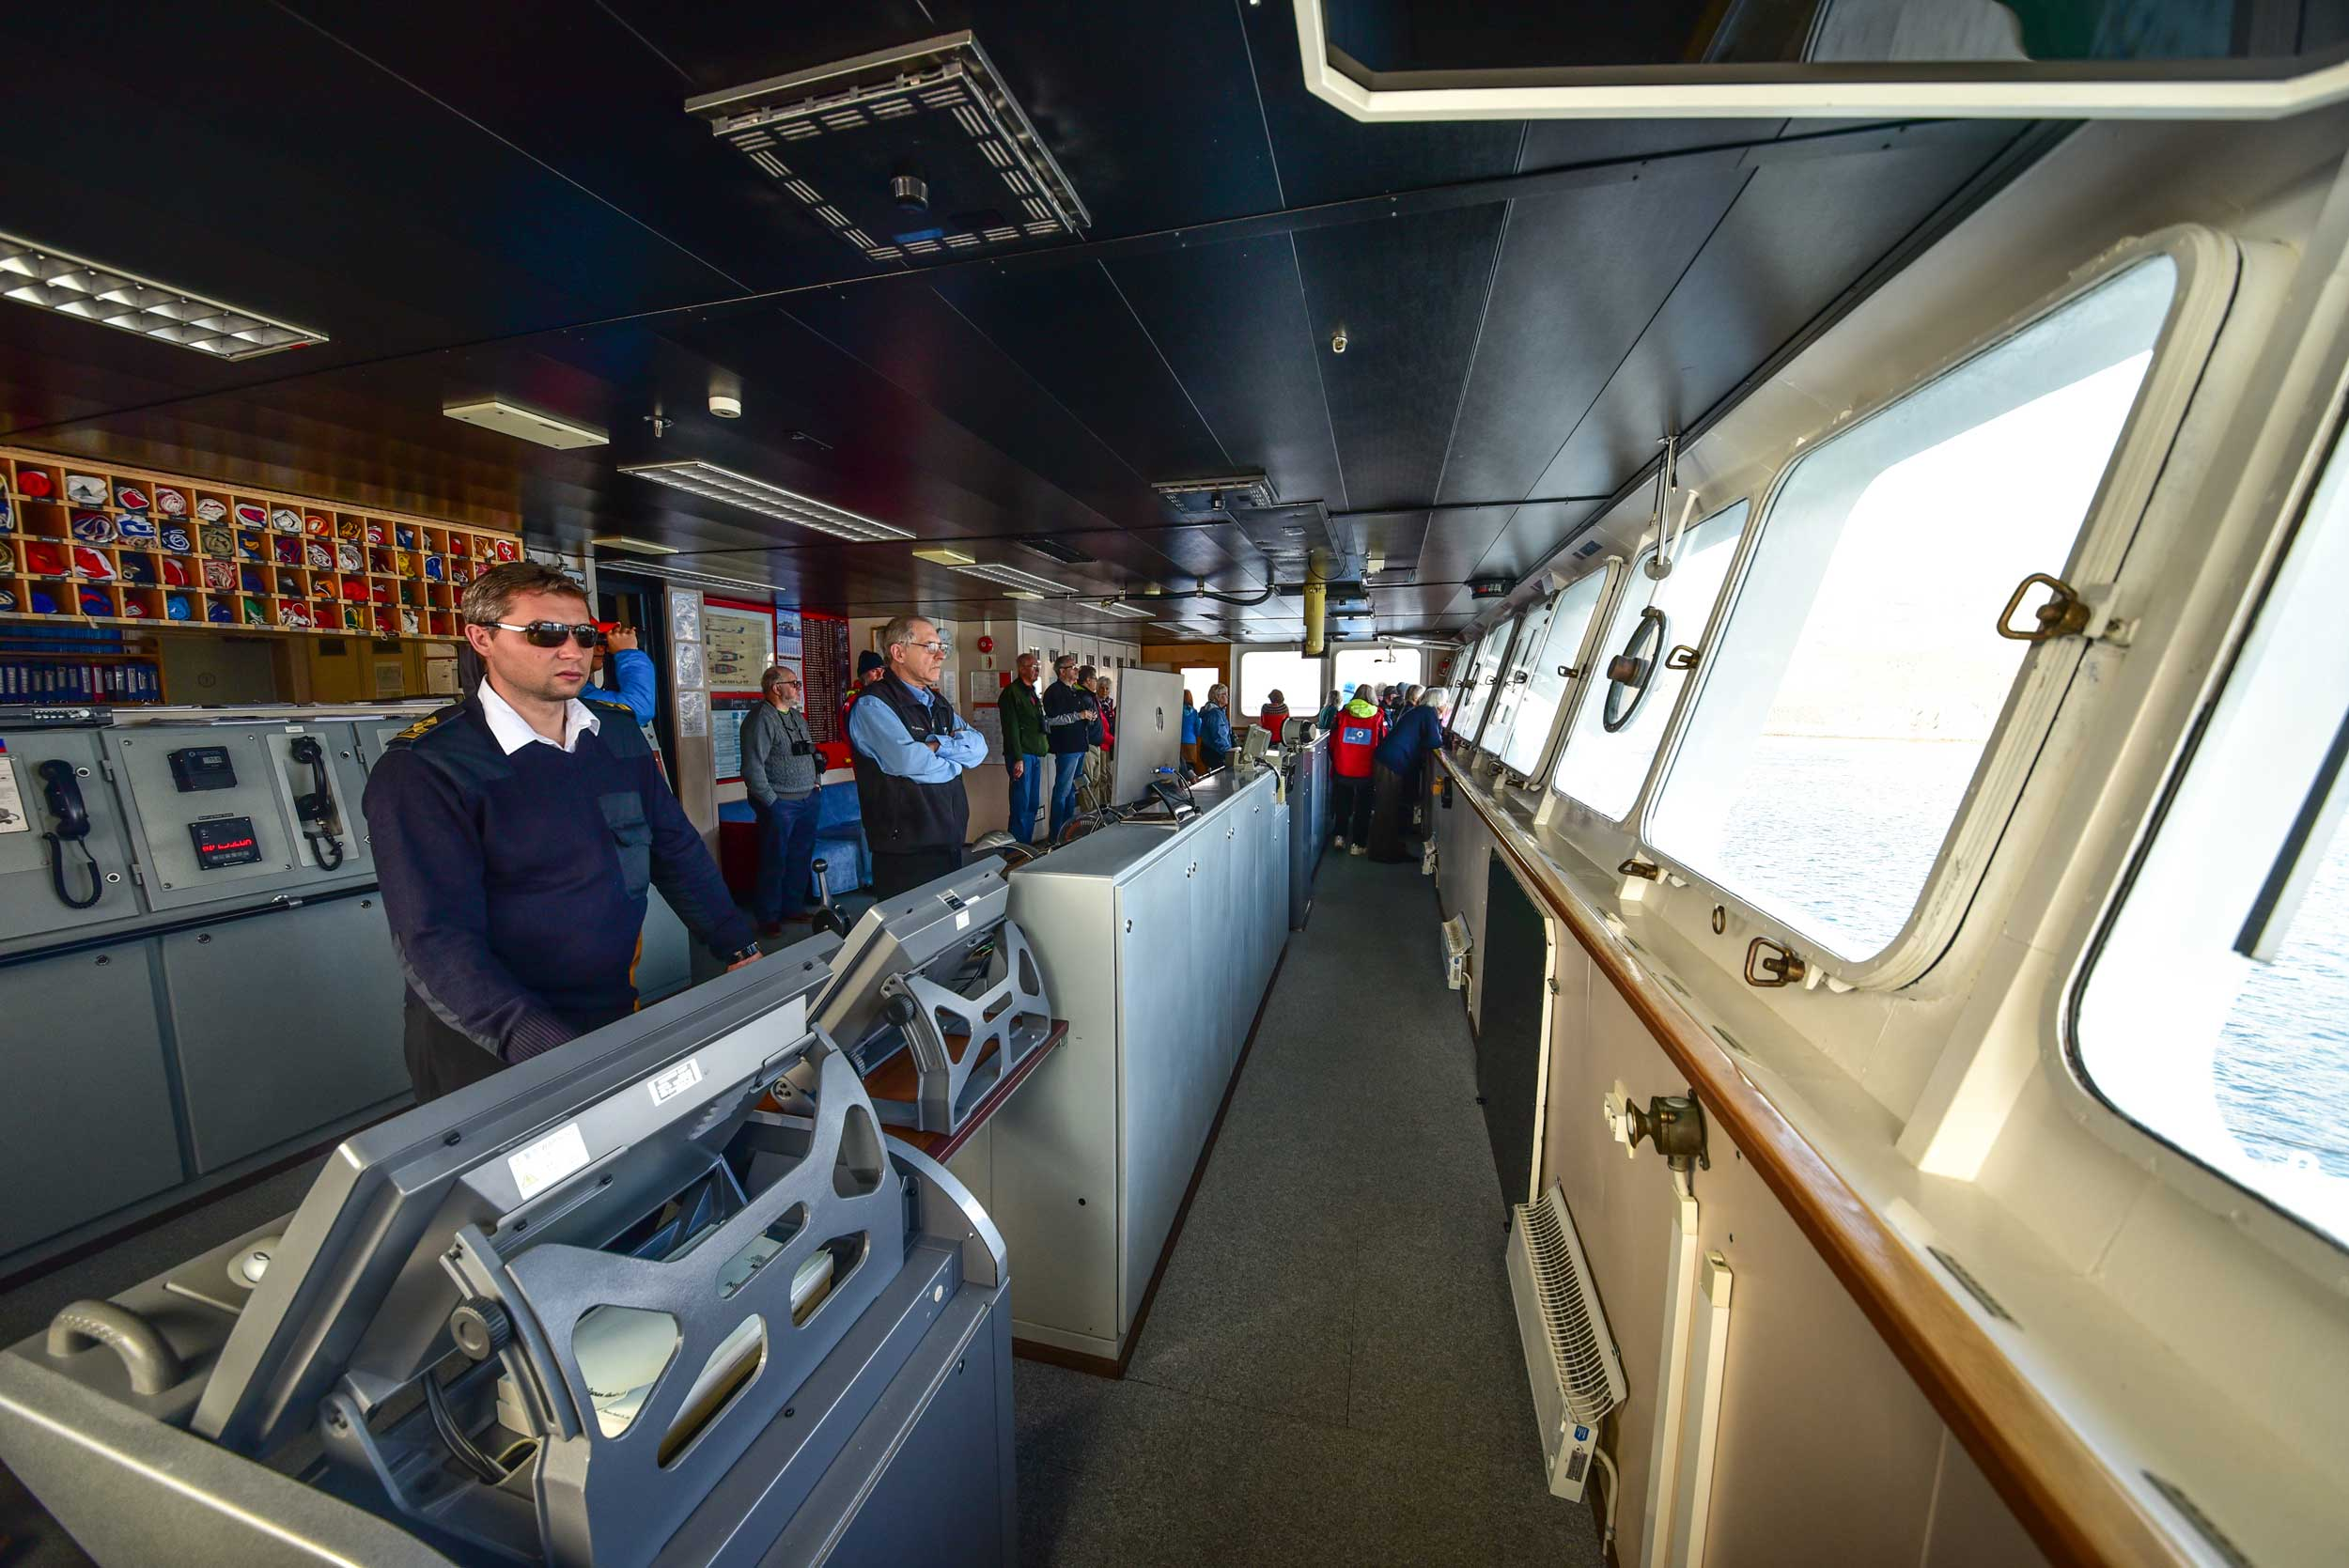 The bridge of a ship with crew at the controls and civilians standing amongst them looking out to sea